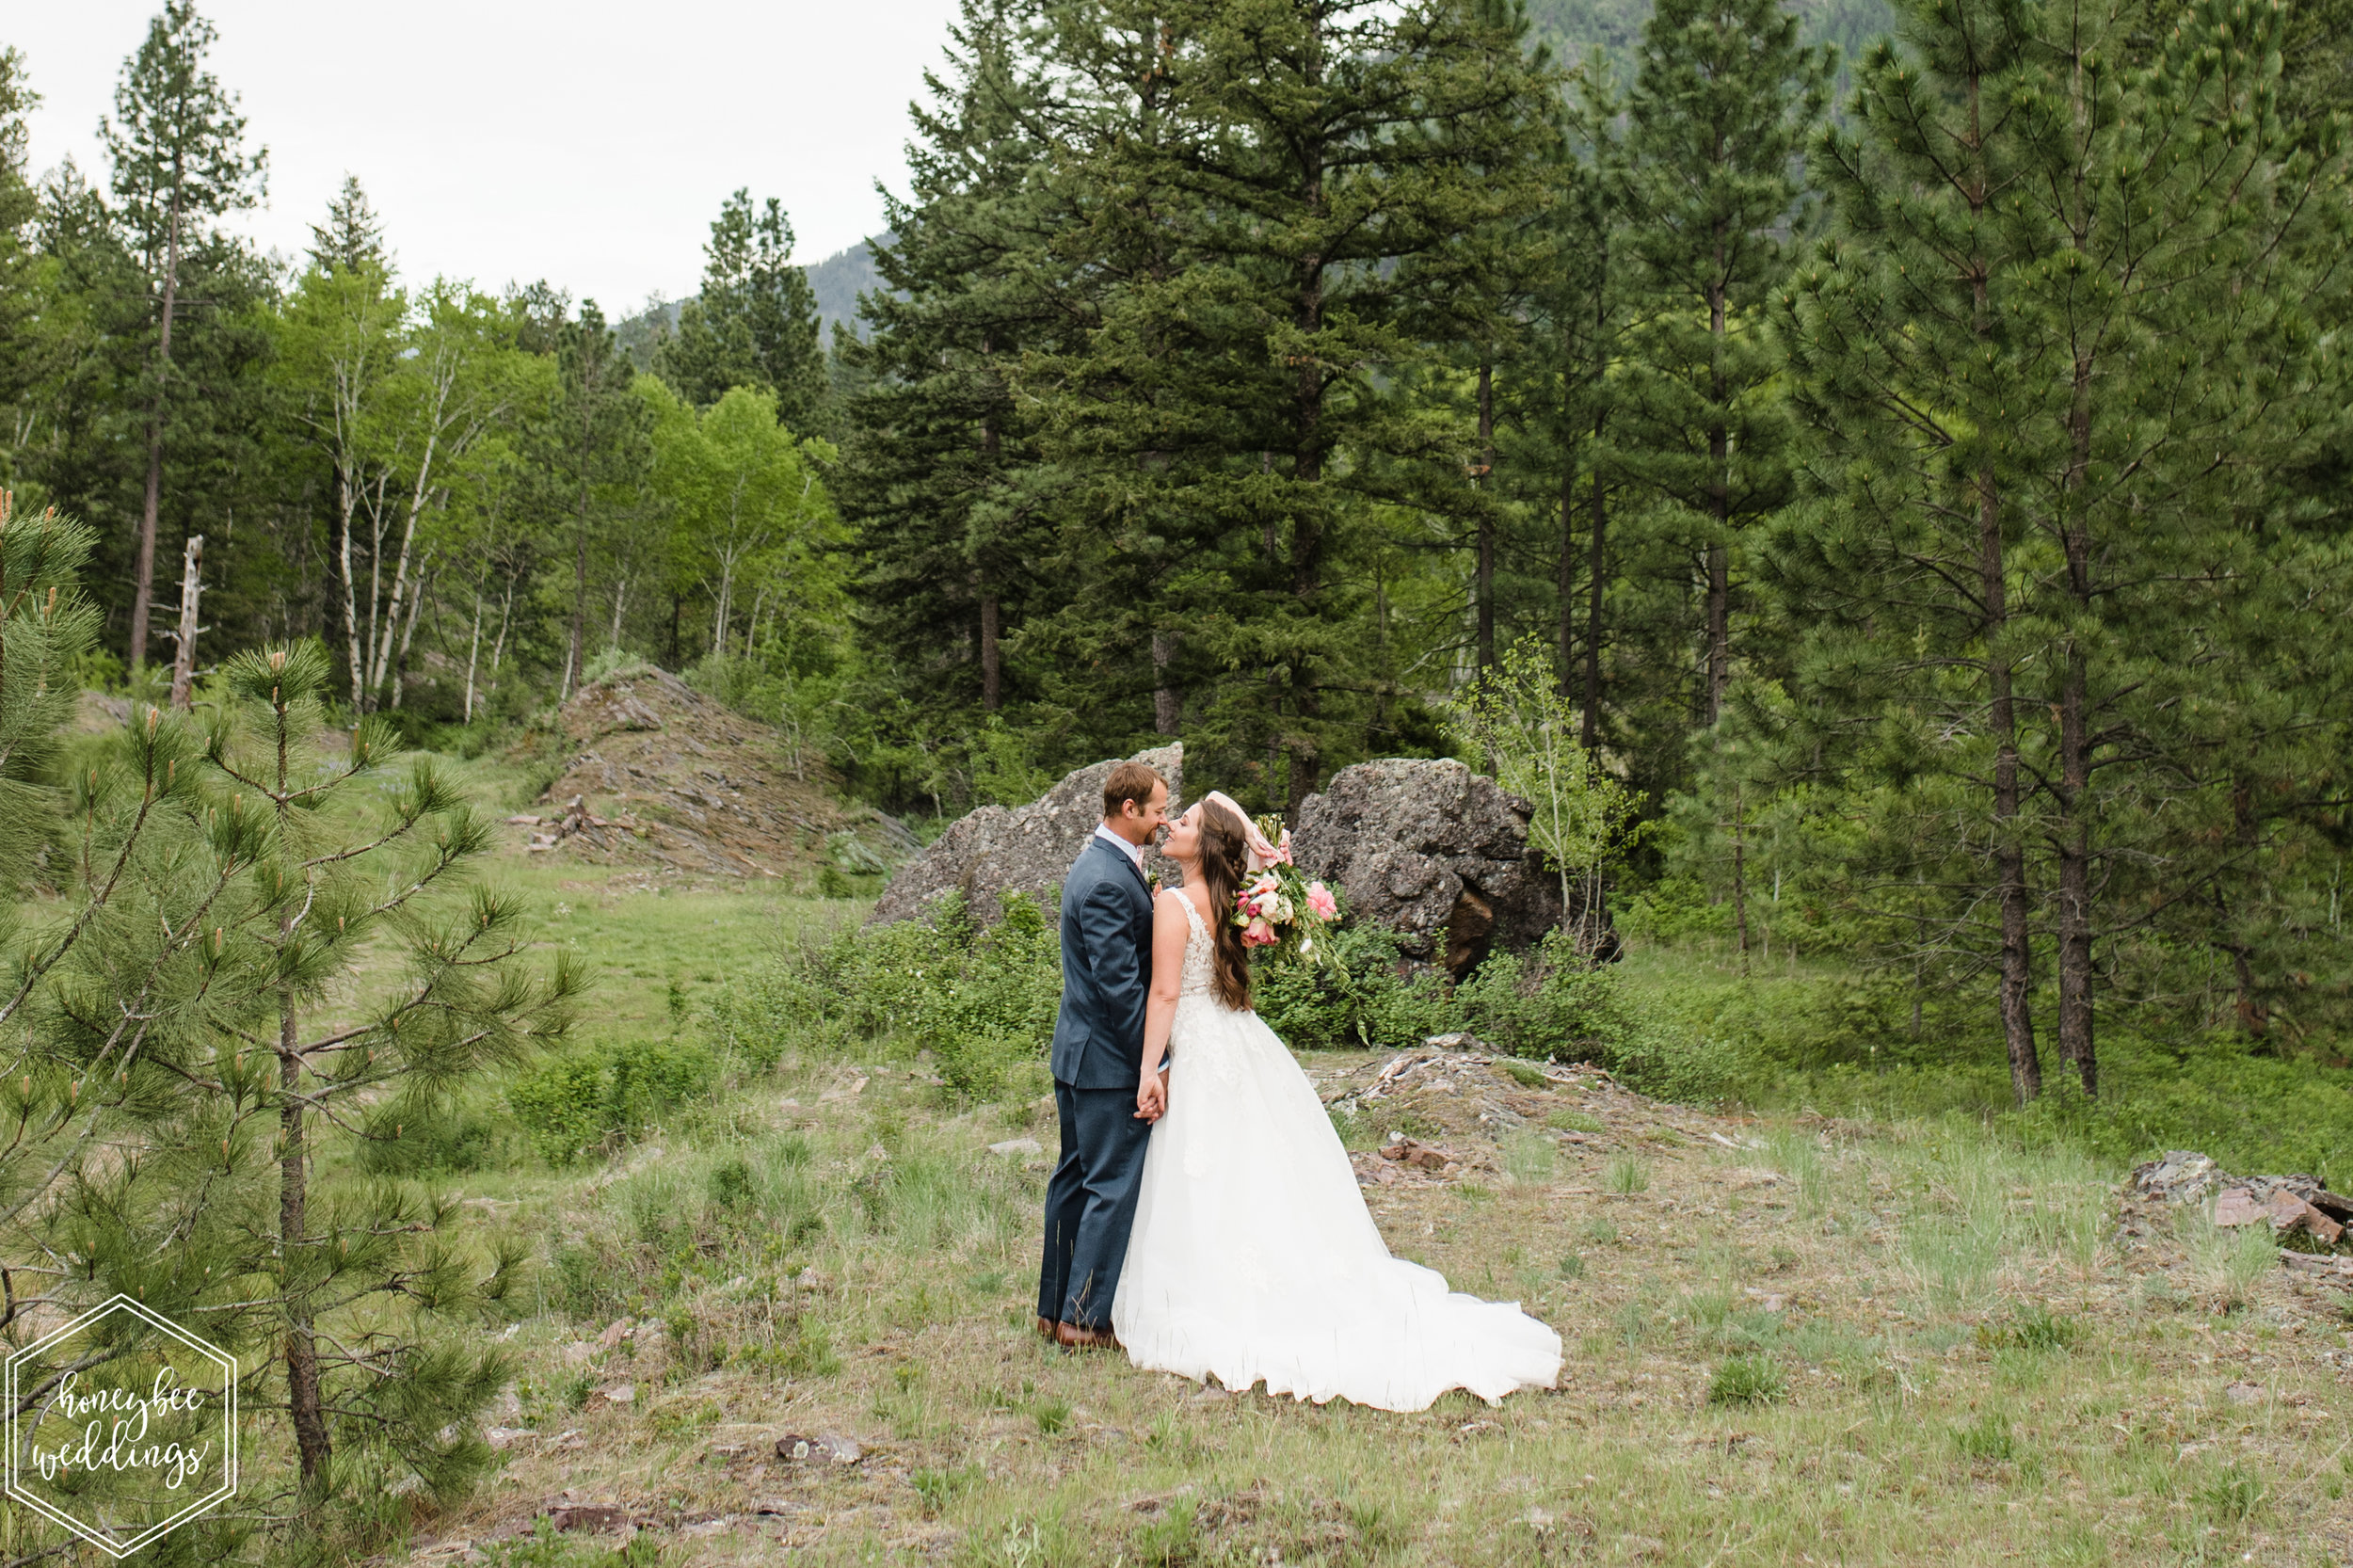 166Coral Mountain Wedding at White Raven_Honeybee Weddings_May 23, 2019-460.jpg